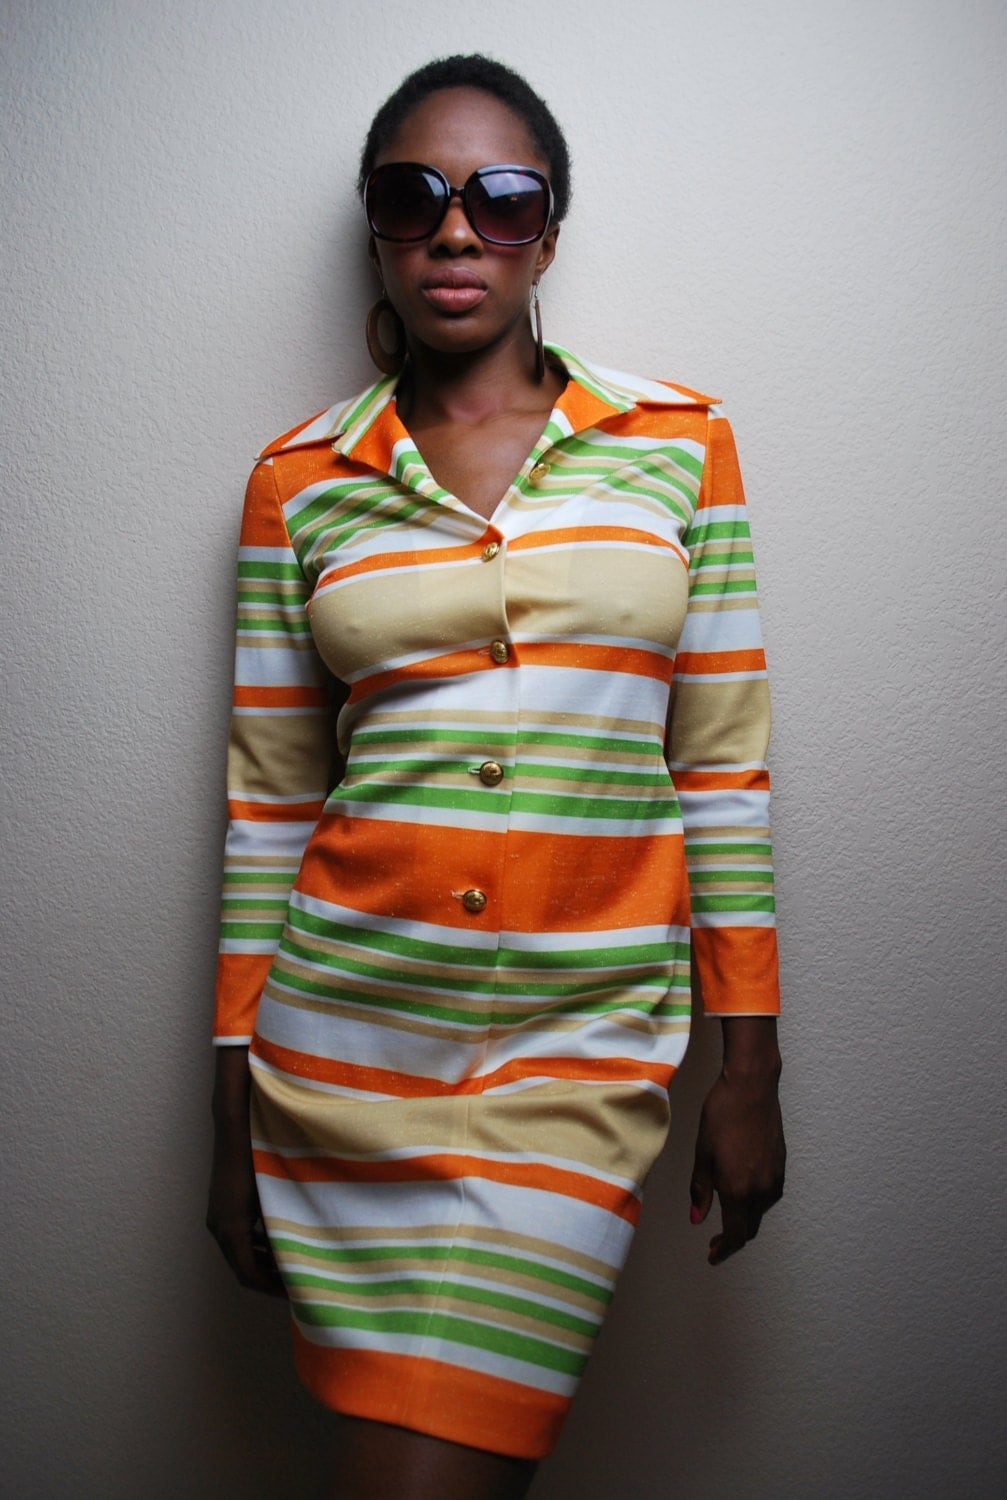 Vintage Mod 1970s Striped Dress